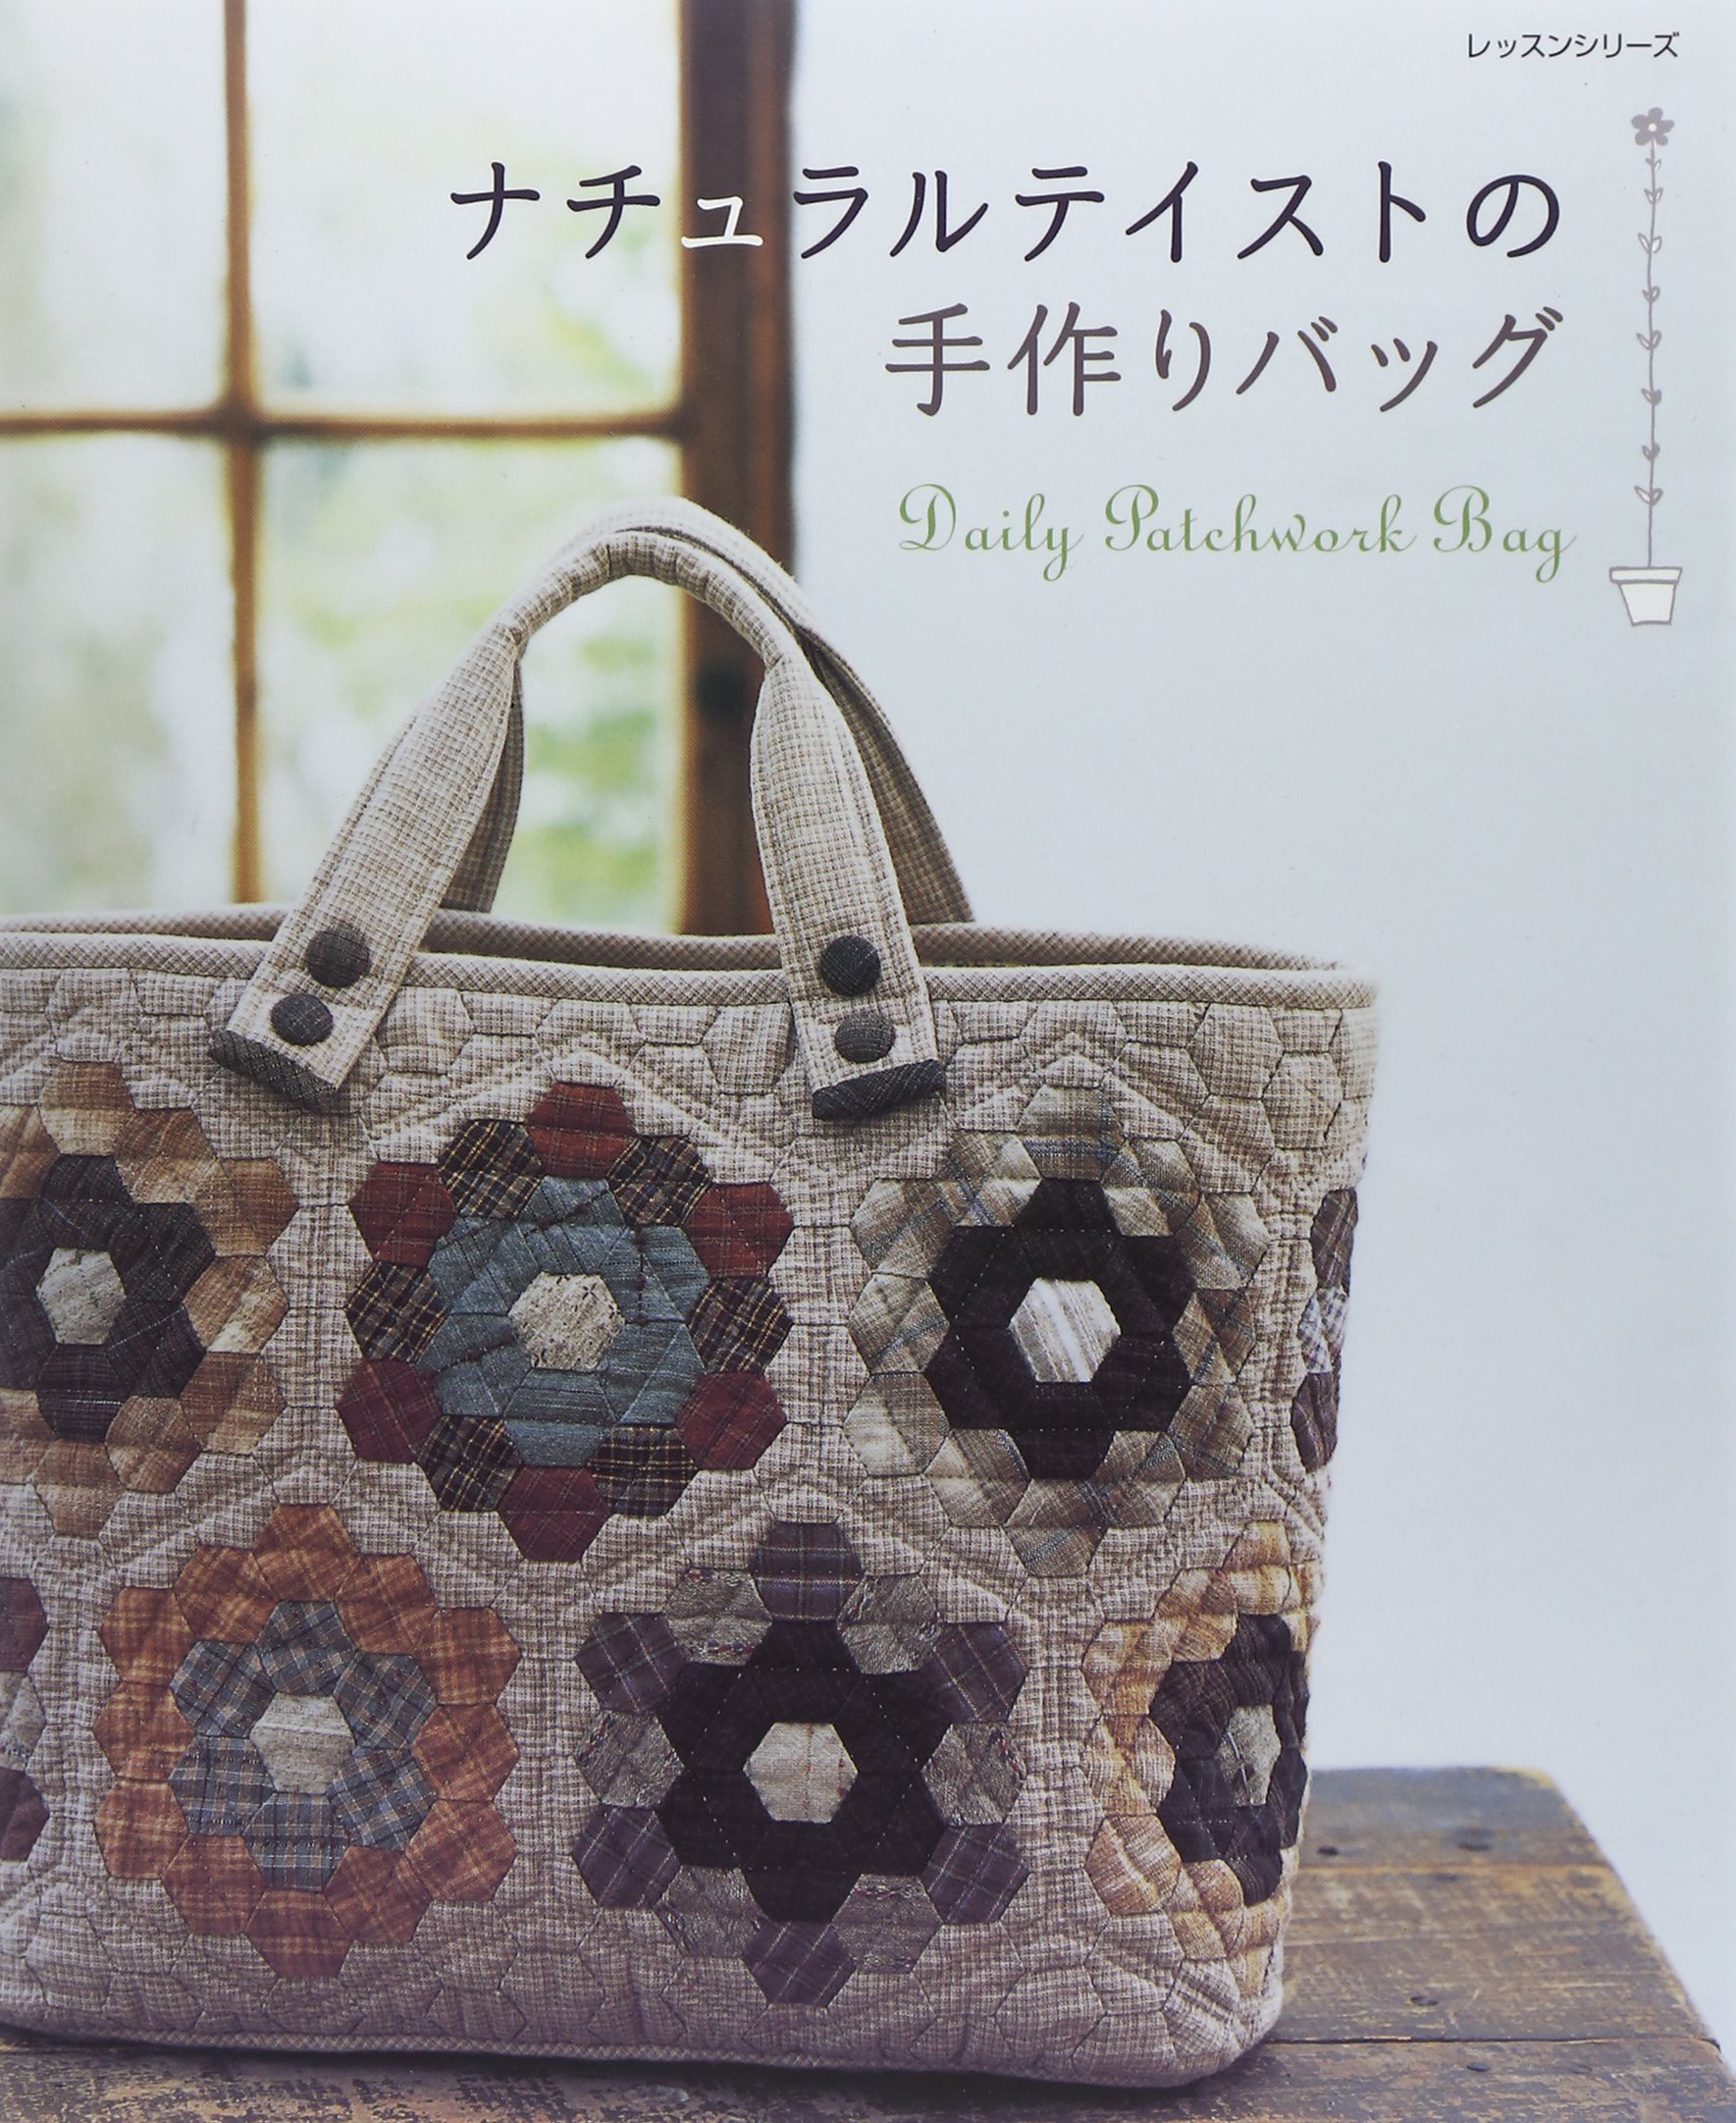 Daily Patchwork Bag of Natural taste